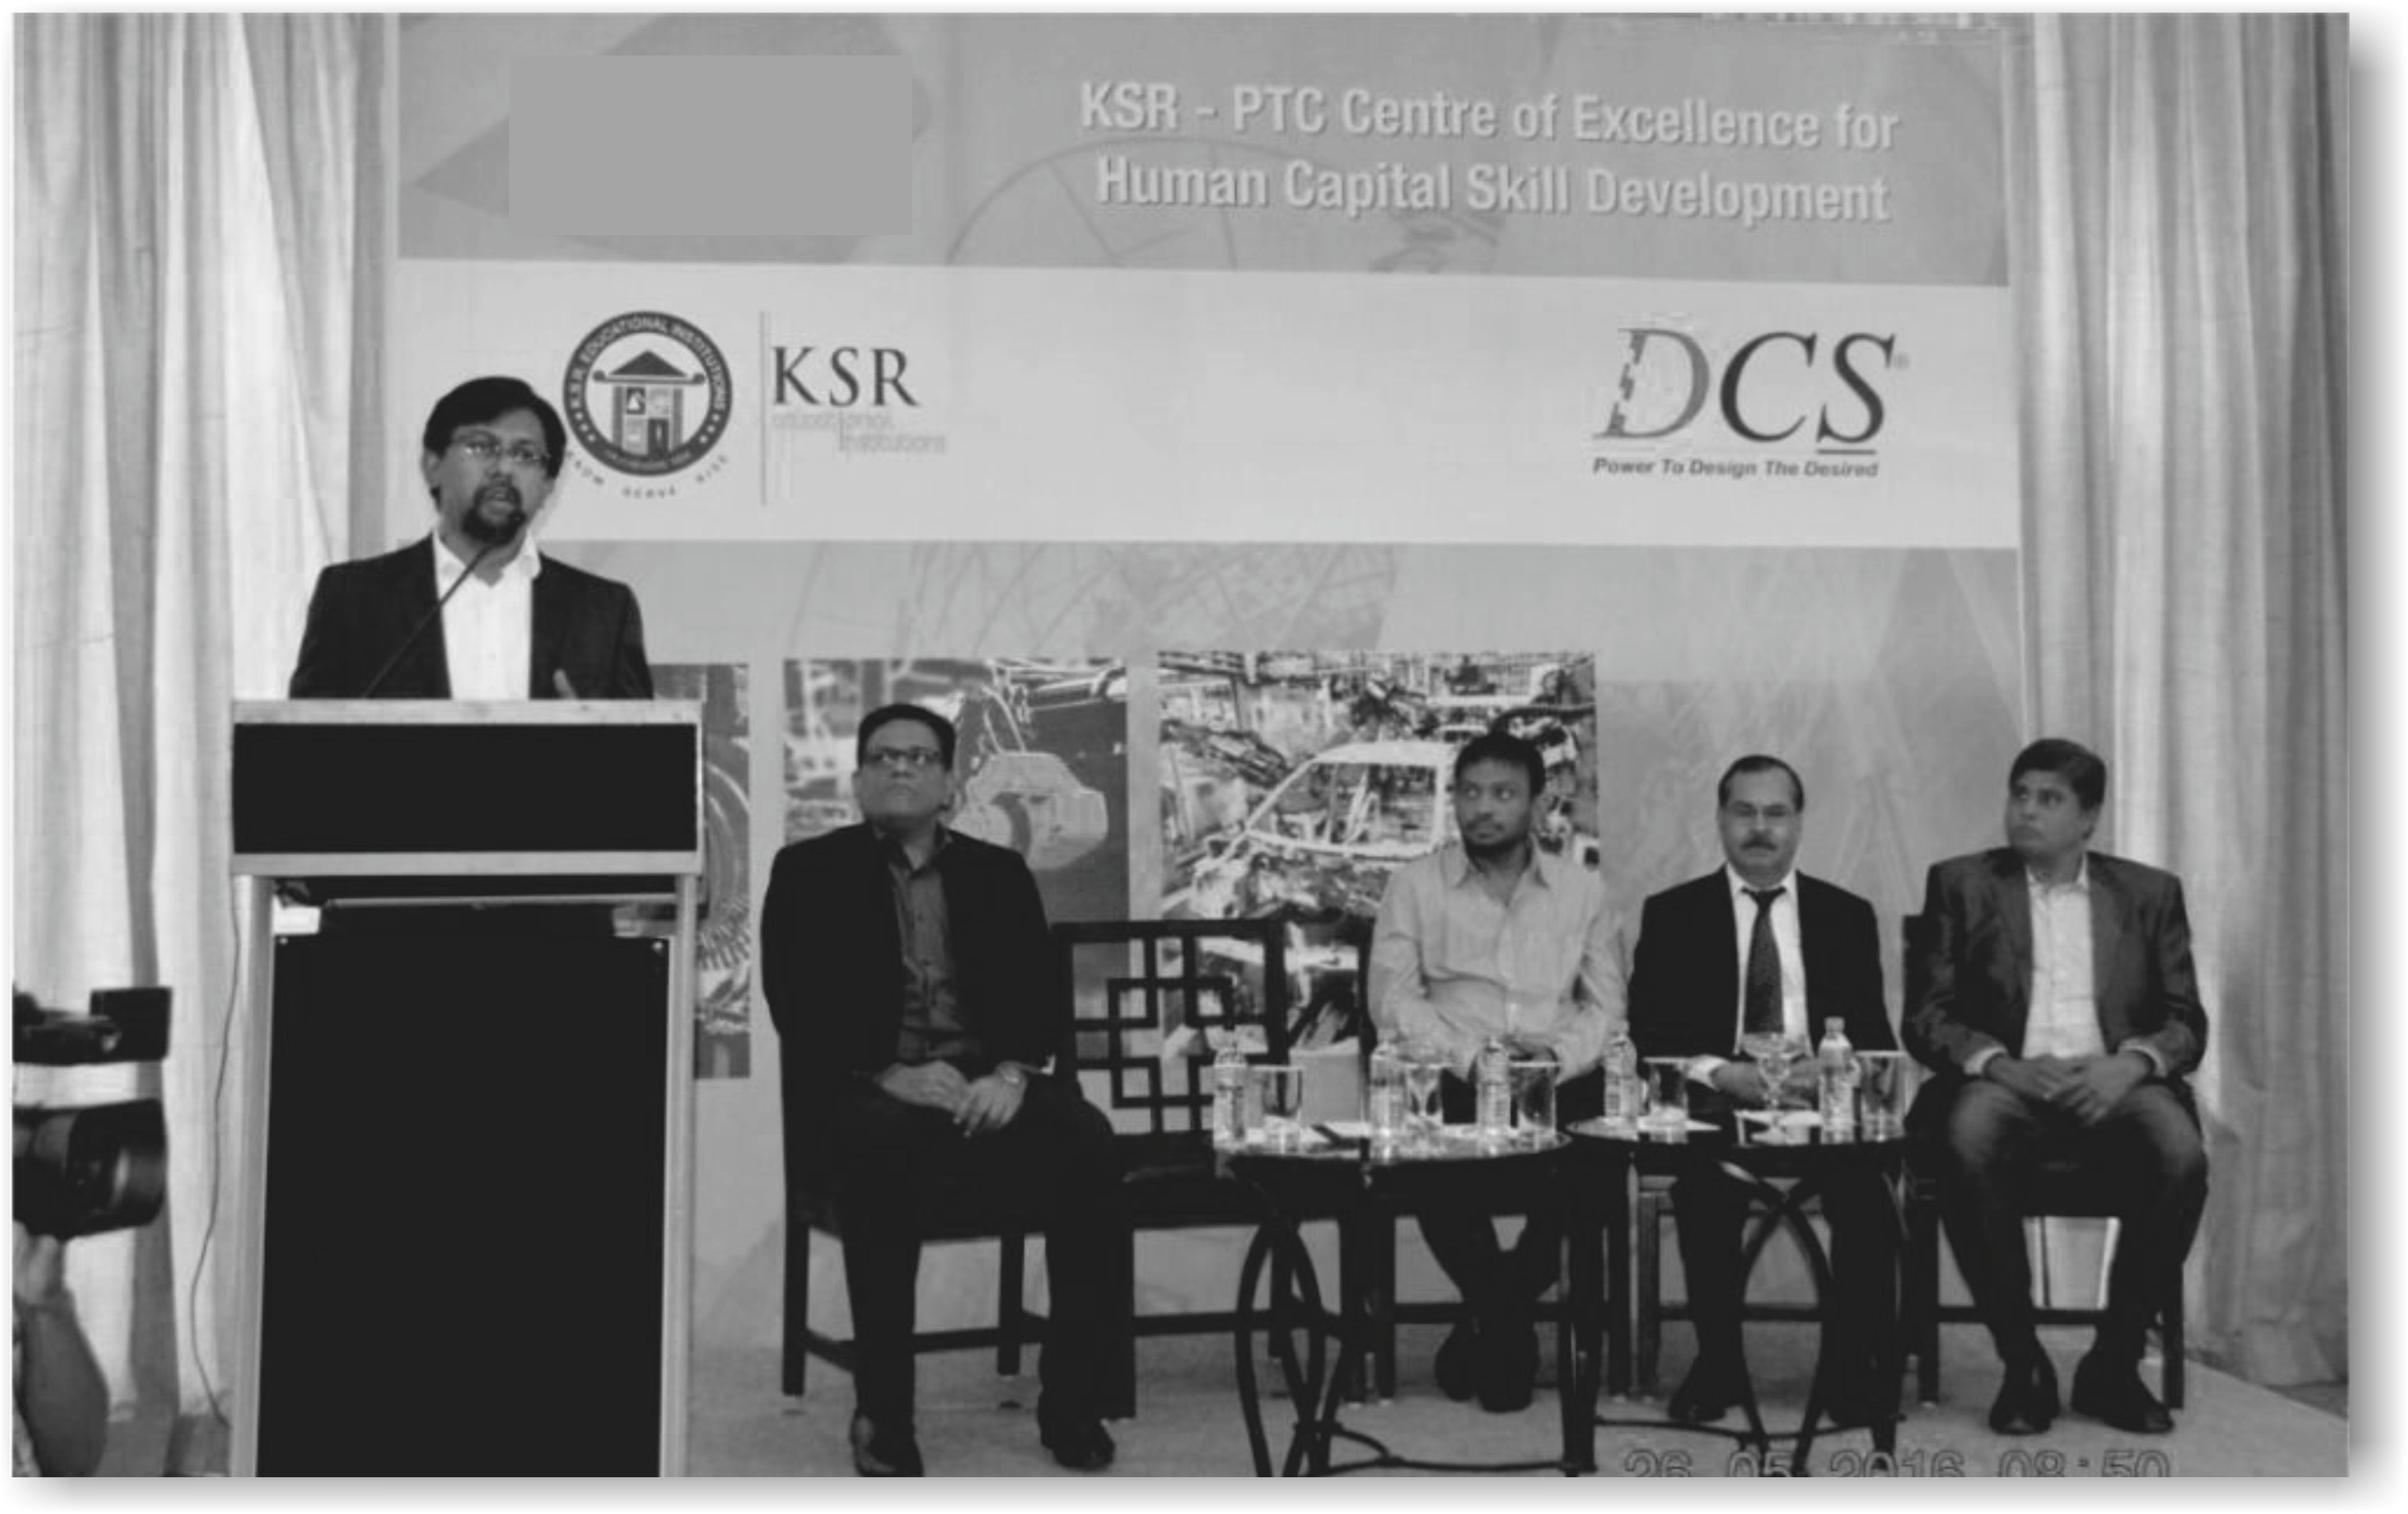 PTC with DCS sets up centre to hone skills of students at KSR Engg